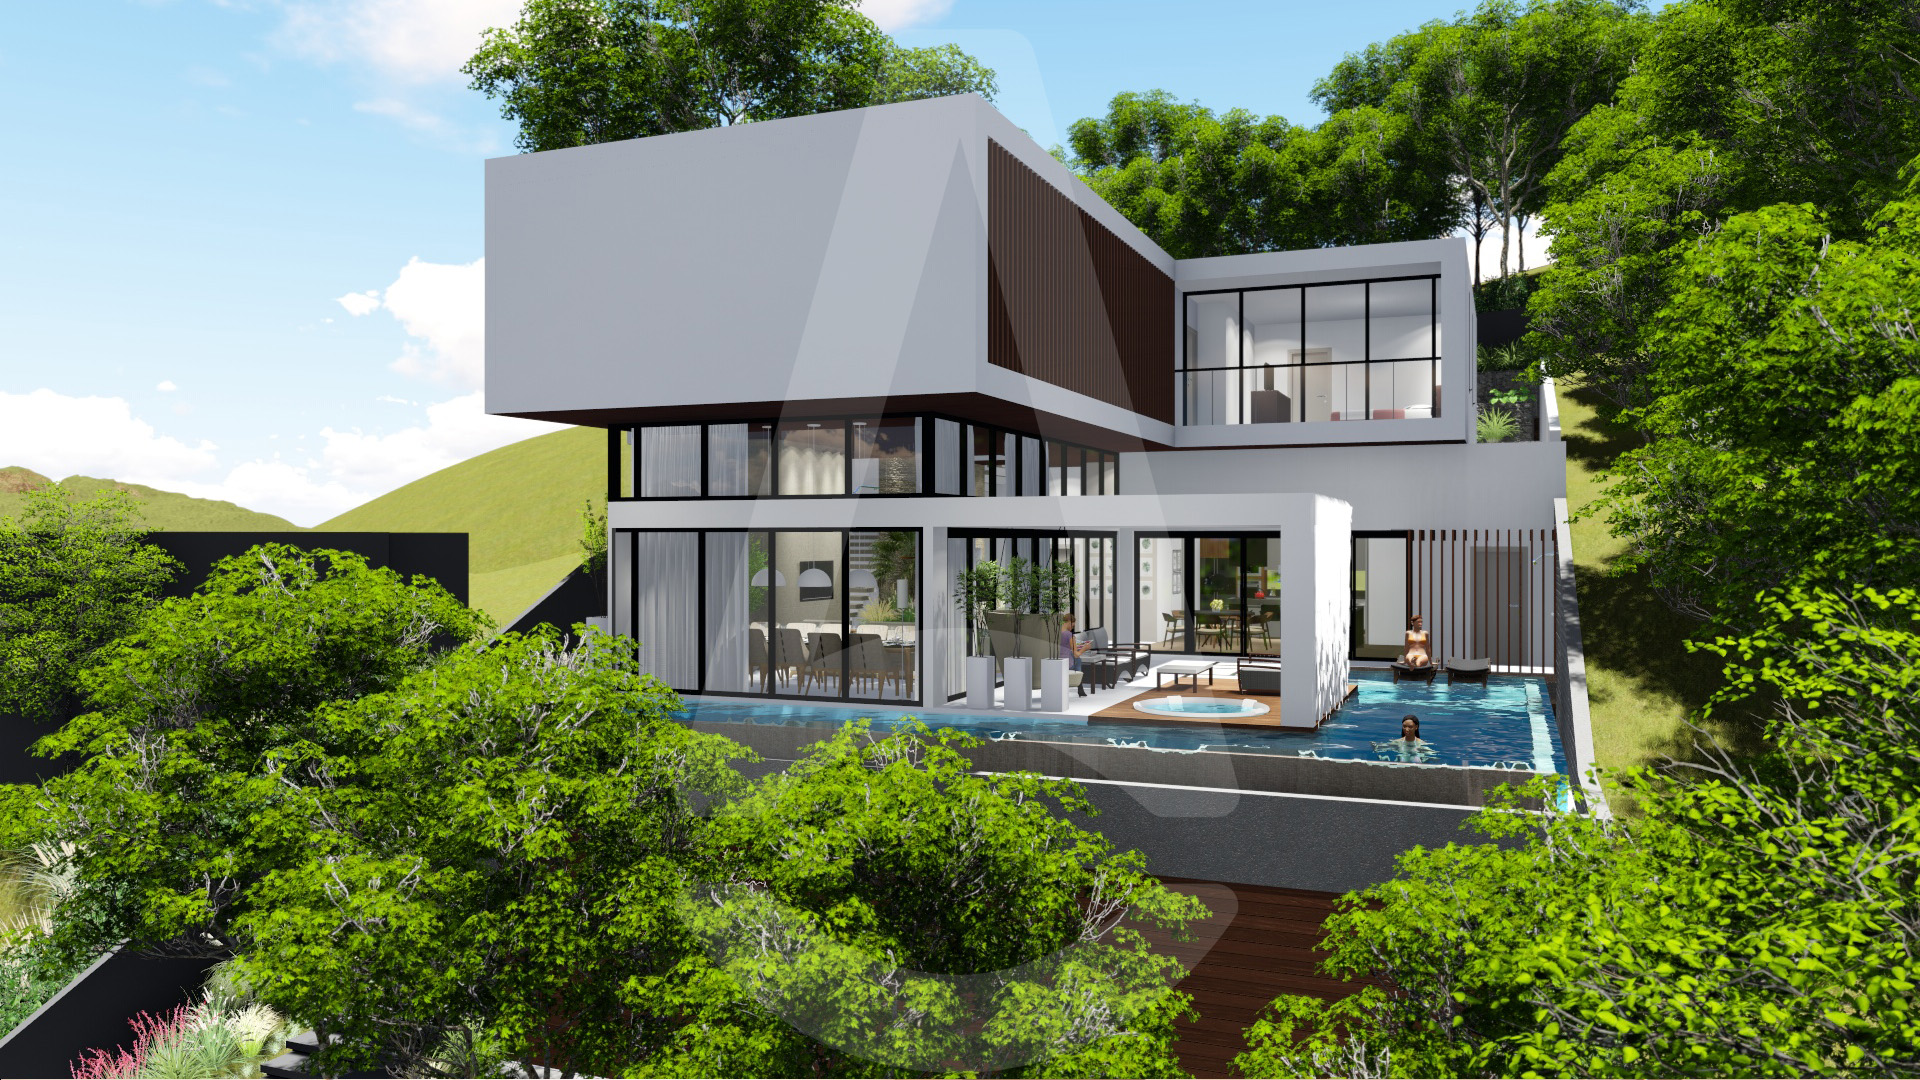 Fachada do projeto residencial em Joinville